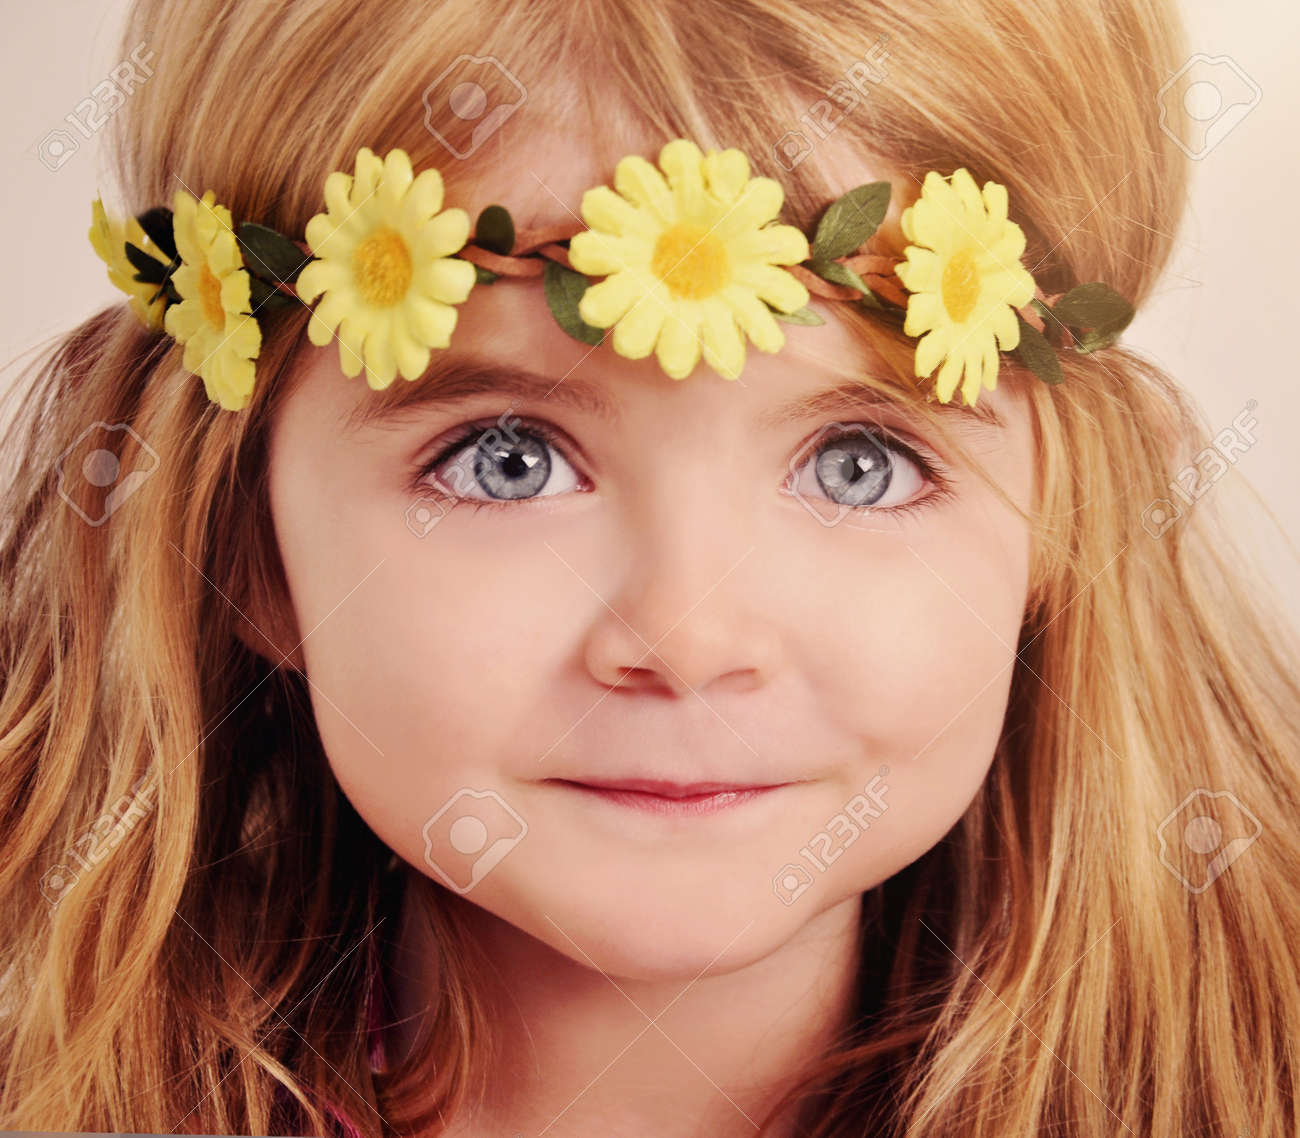 A Closeup Of A Happy Little Girl Wearing A Yellow Flower Garland